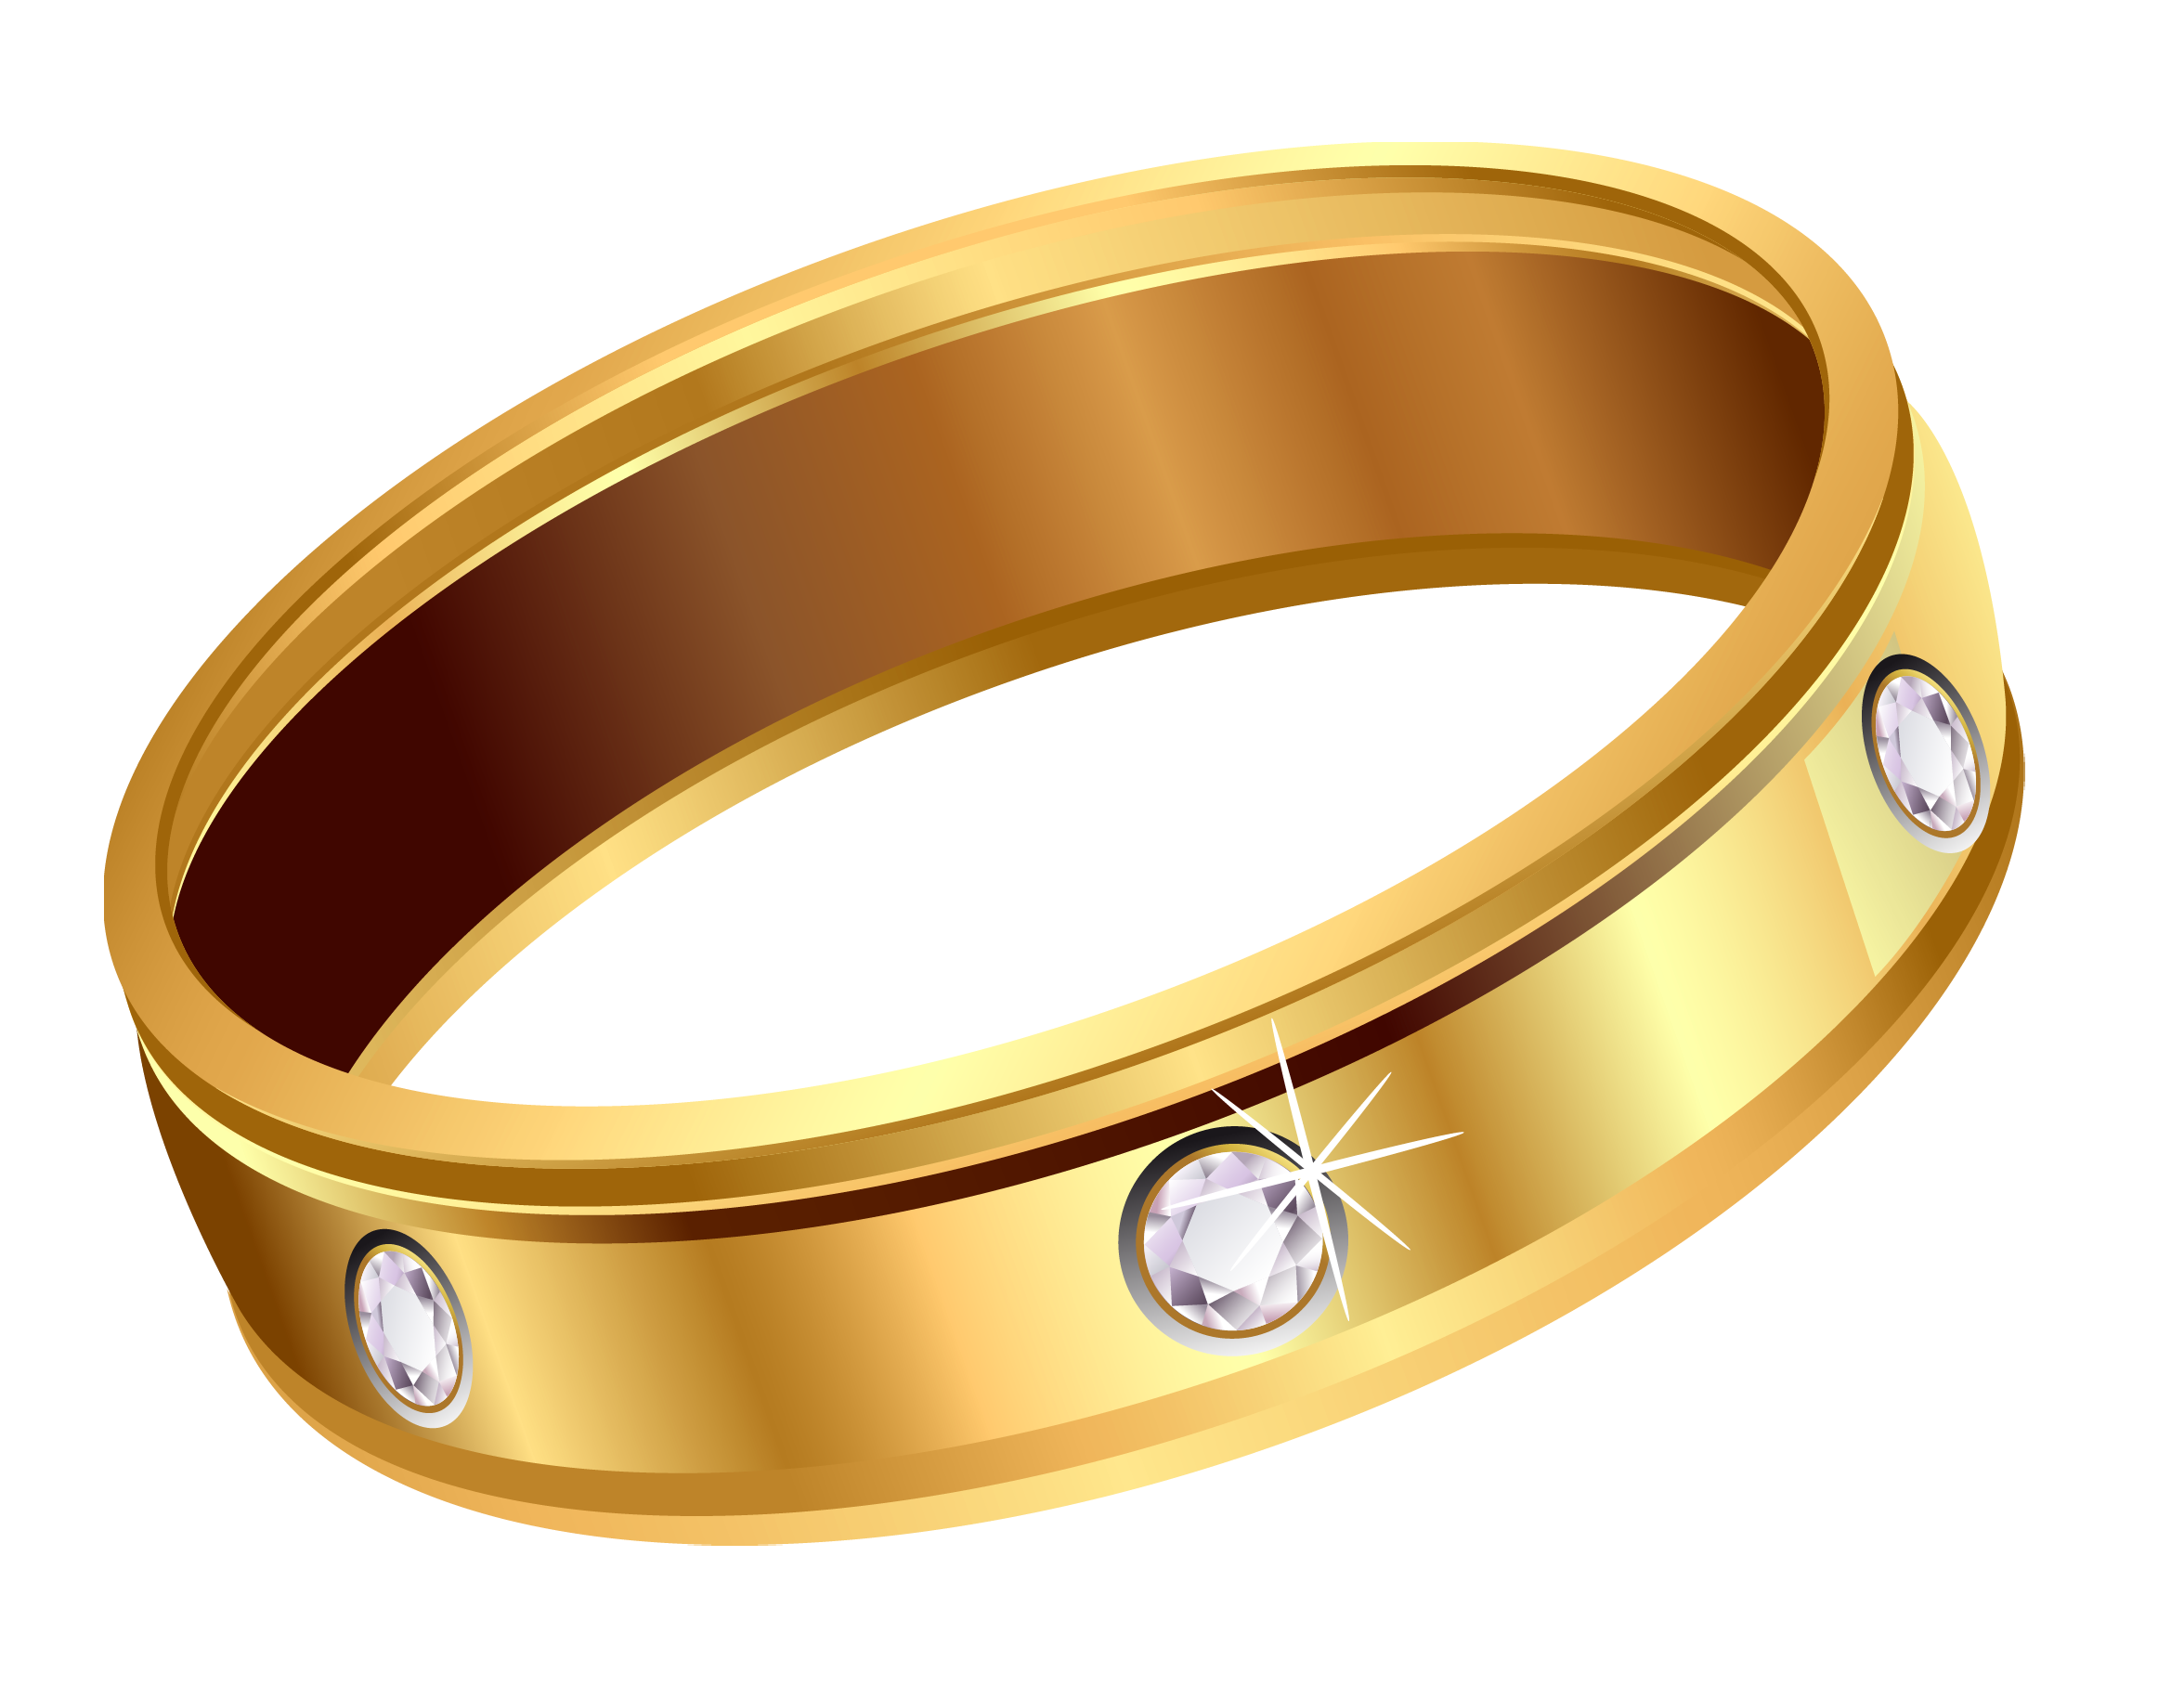 Transparent Gold Ring with Diamonds PNG Clipart